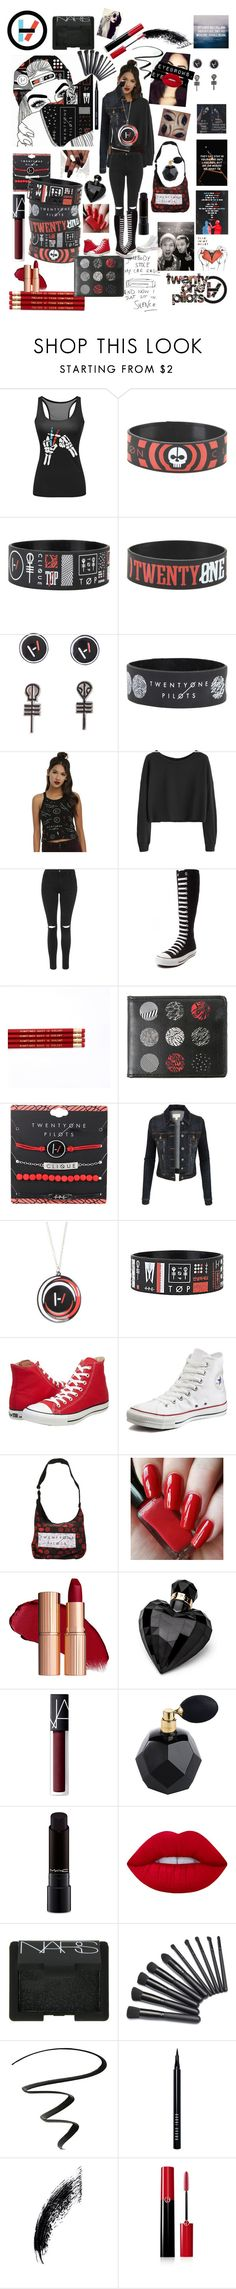 """You all have guns, but you never put the safety on"" by gothgirl87454 ❤ liked on Polyvore featuring Topshop, Converse, LE3NO, Traits, Lipsy, NARS Cosmetics, MAC Cosmetics, Lime Crime, NYX and Bobbi Brown Cosmetics"